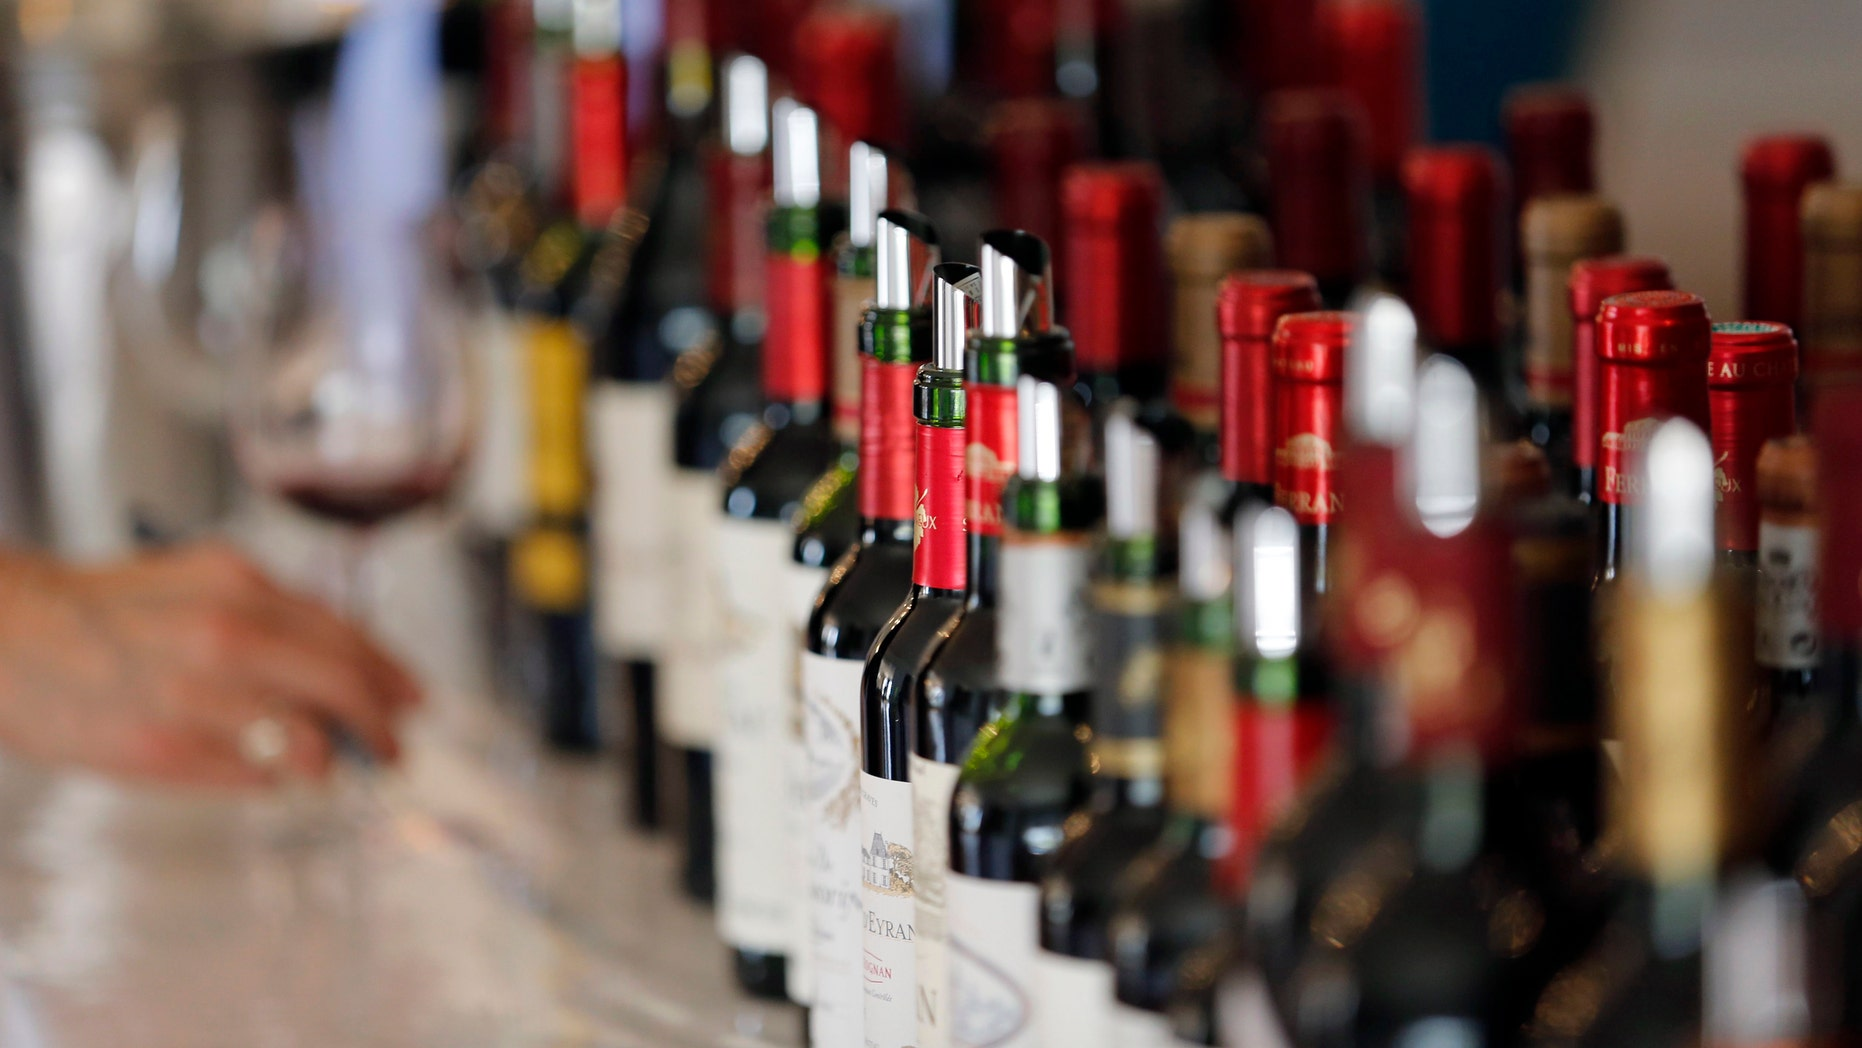 File photo - Bottles of French wine are displayed at the Chateau Bouscaut in Cadaujac, southwestern France, during the start of a week of wine tasting at the chateaux in the Bordeaux region April 4, 2016. (REUTERS/Regis Duvignau)